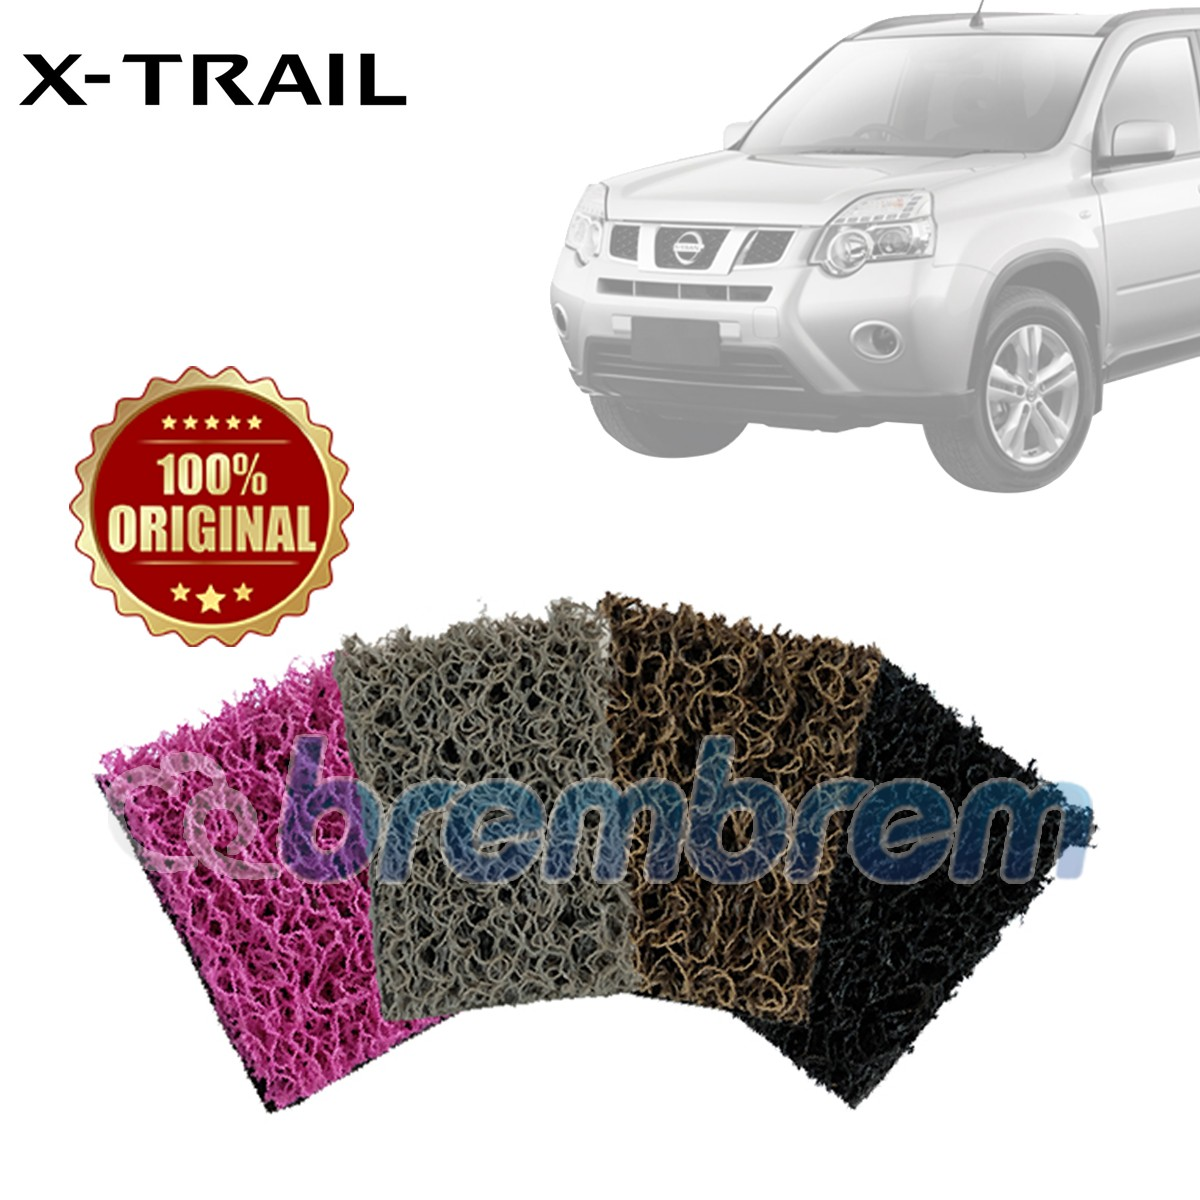 KARPET COMFORT DELUXE + BAGASI NISSAN X-TRAIL